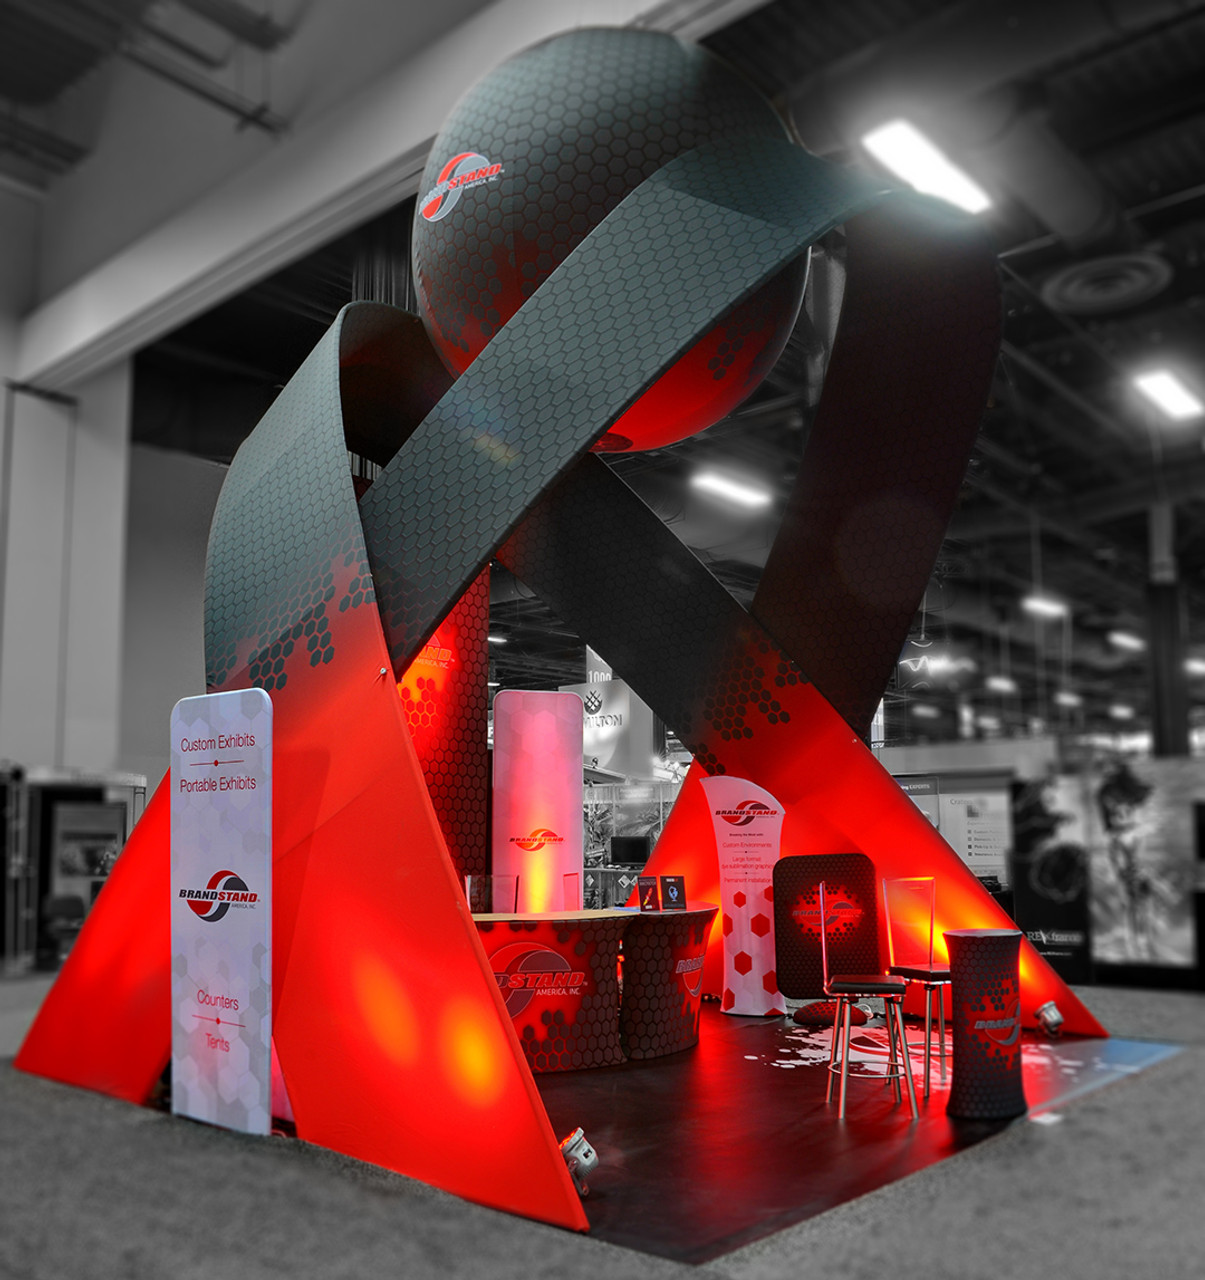 Exhibition Stand Lighting Xl : Exhibit design ideas & inspiration trade show displays